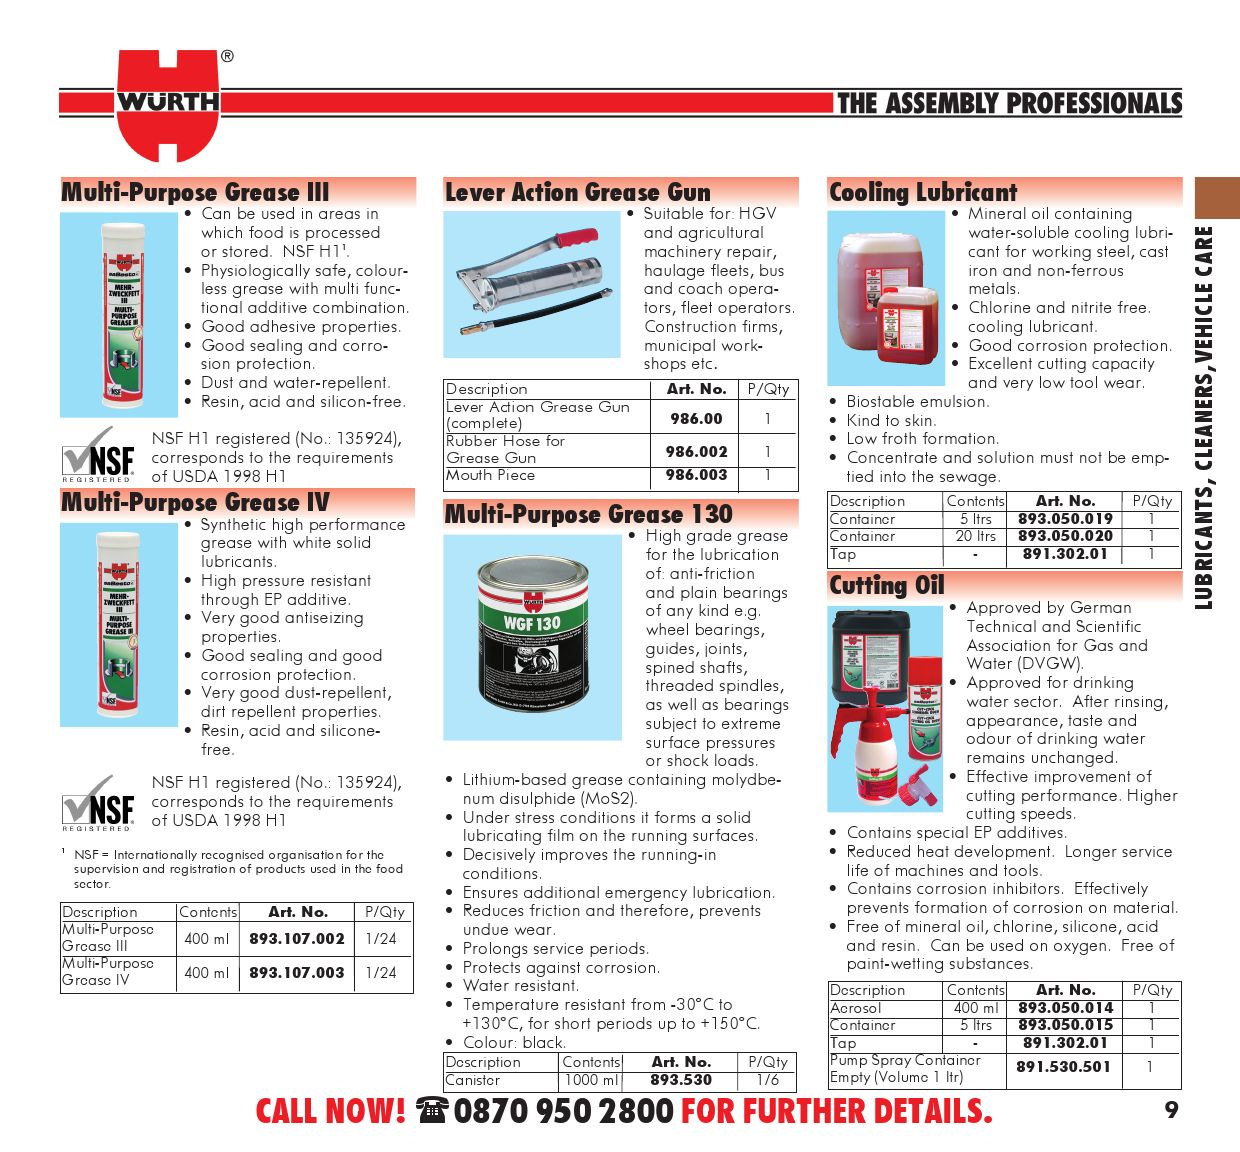 Catalogue - Lubricants, Cleaners, Vehicle Care by Würth UK